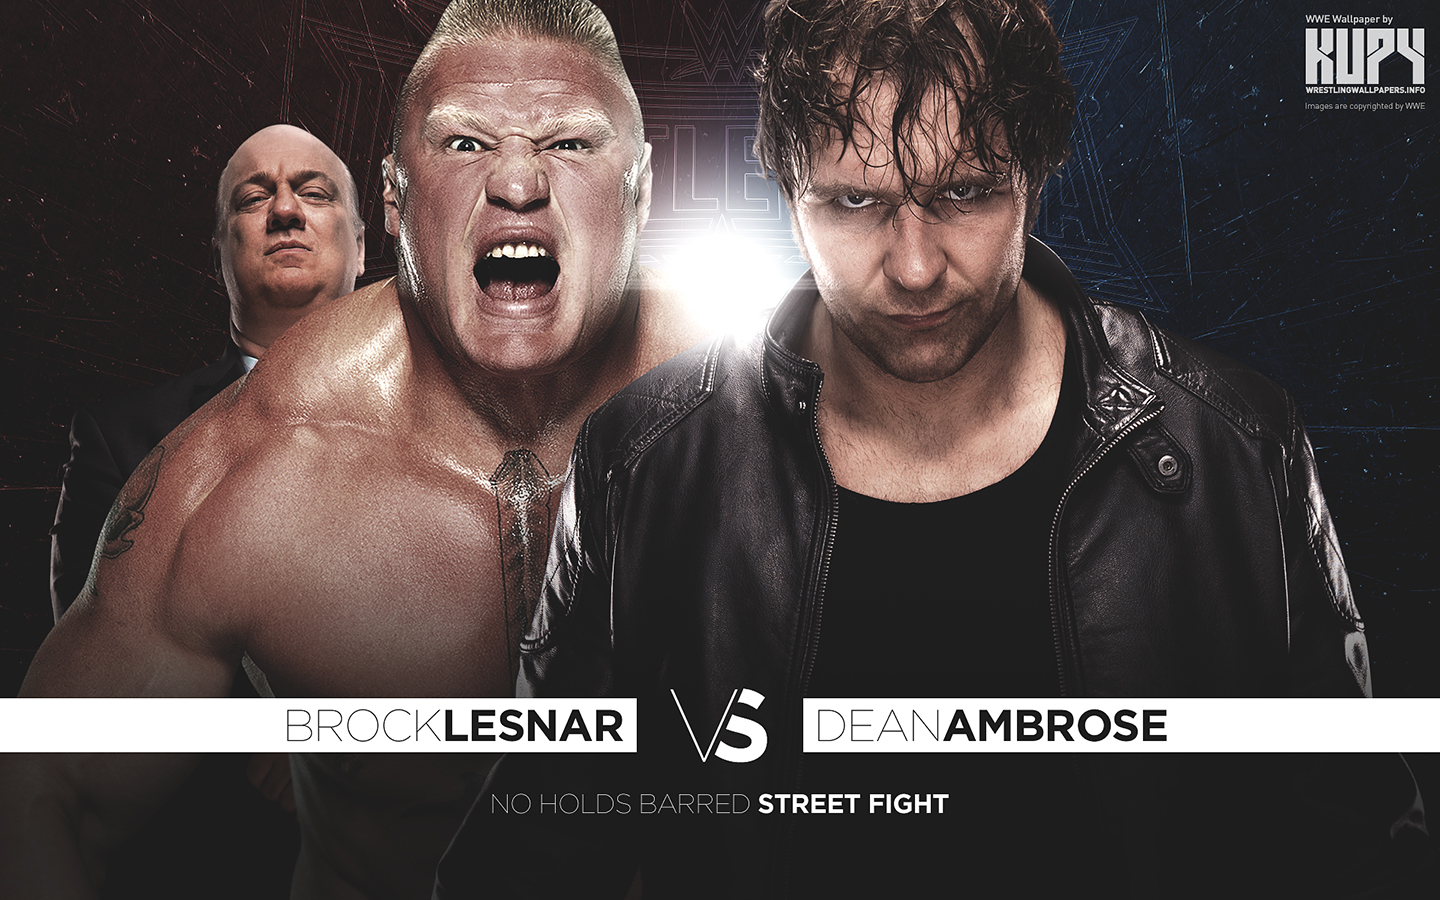 wrestlemania 32 brock lesnar vs dean ambrose wwe